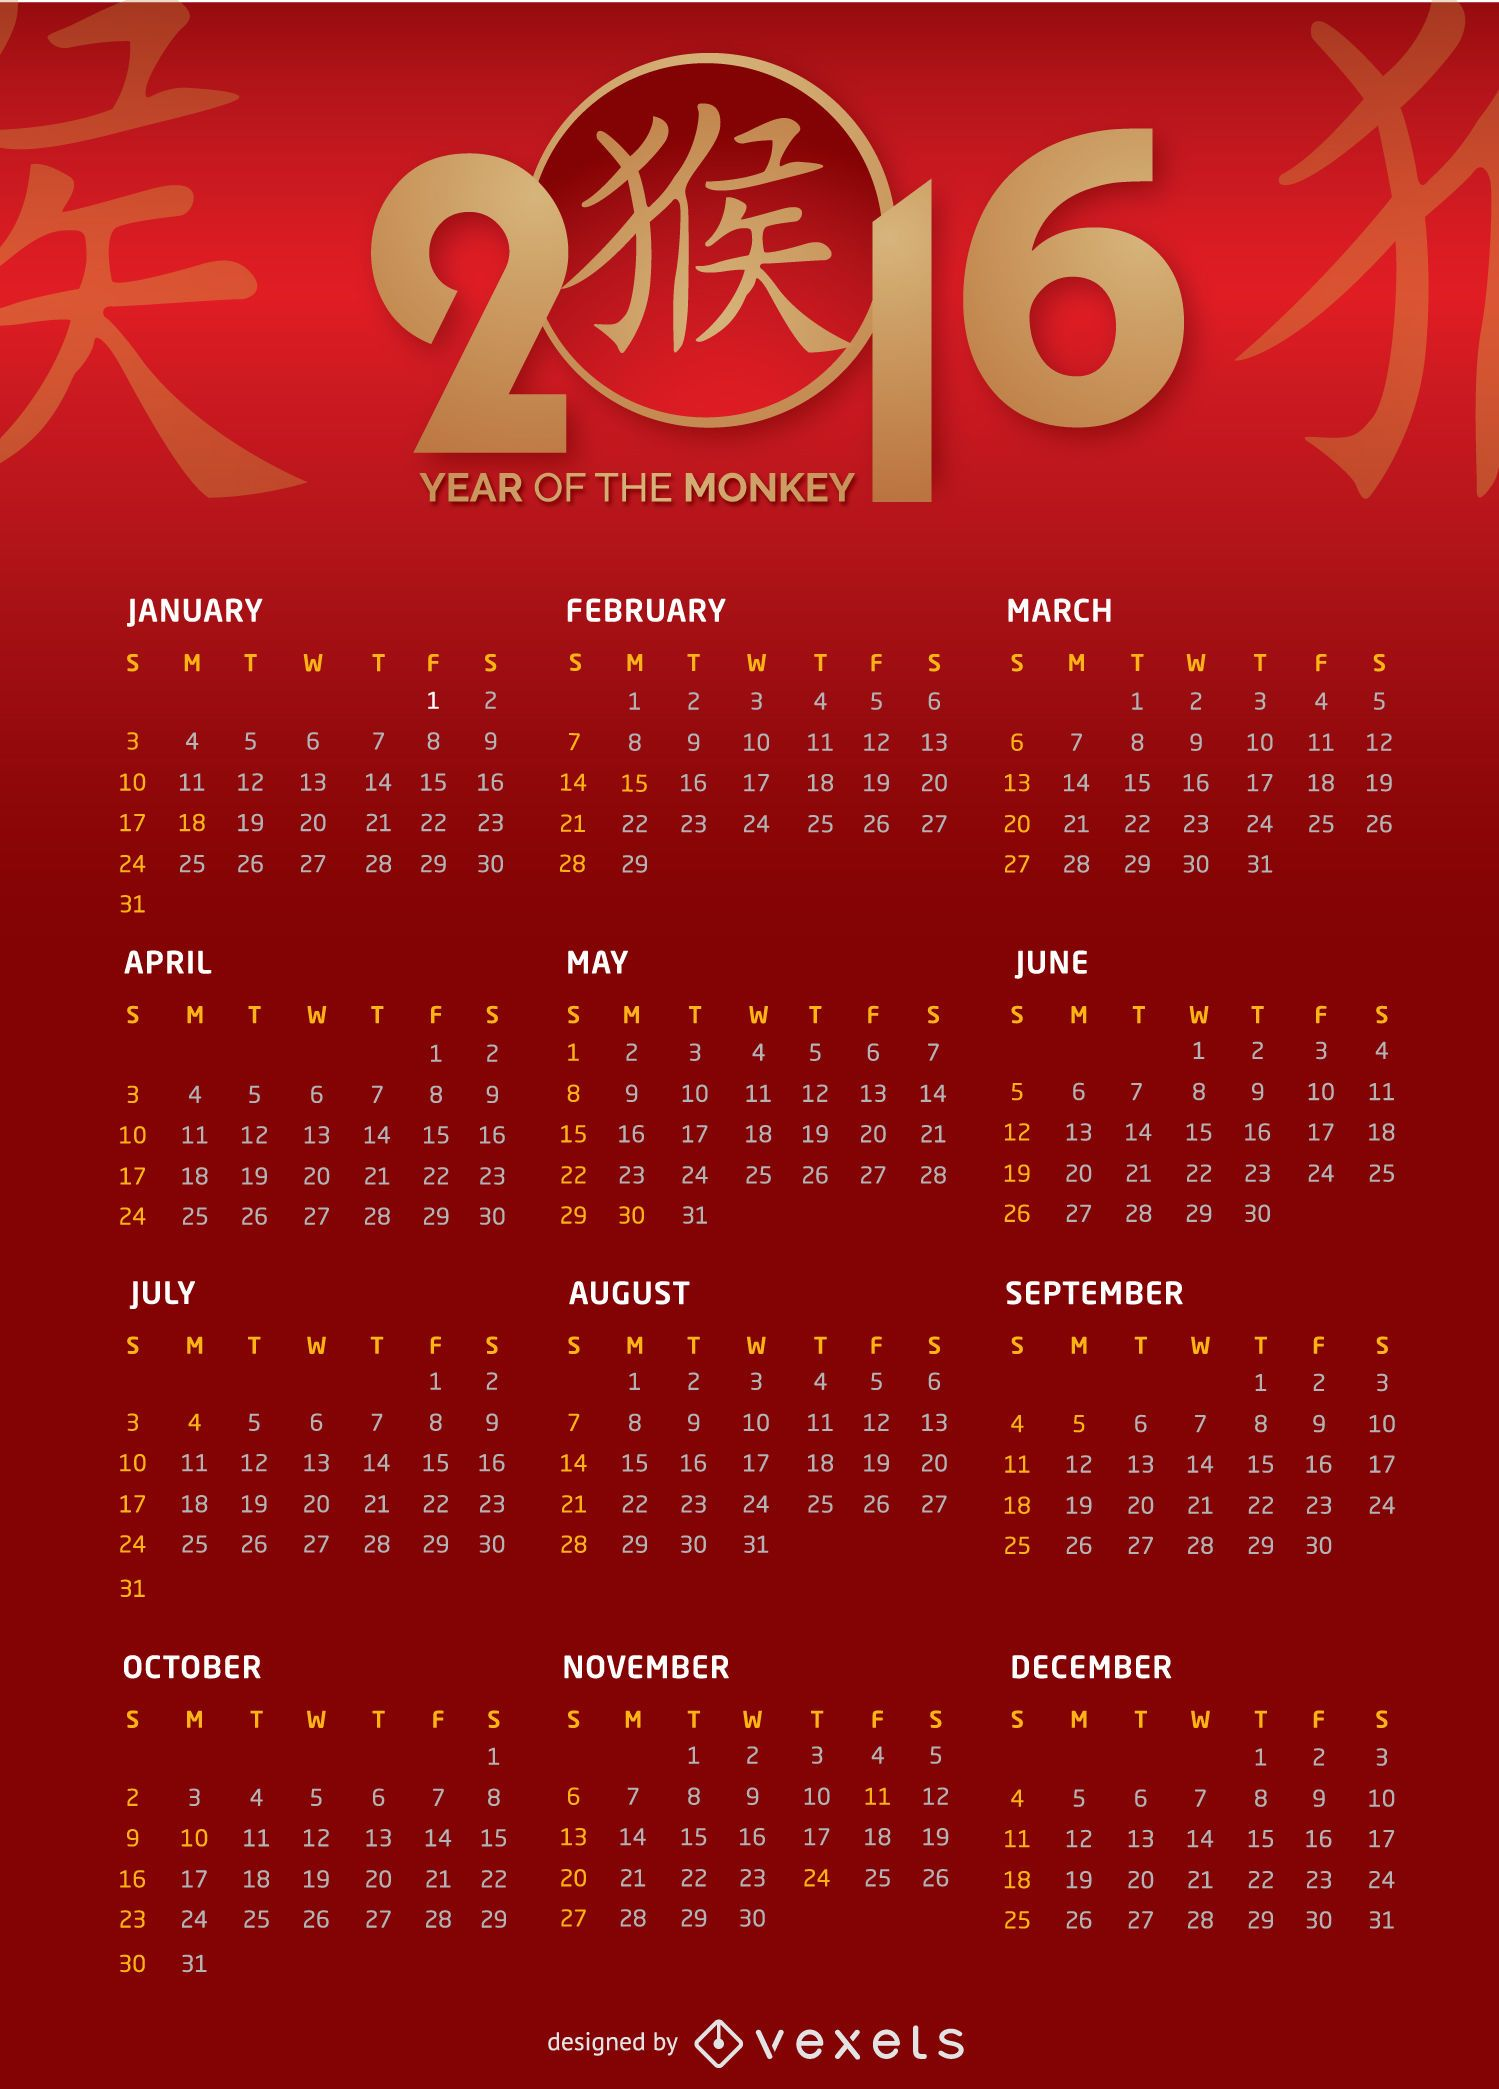 2016 Calendar with Chinese Character